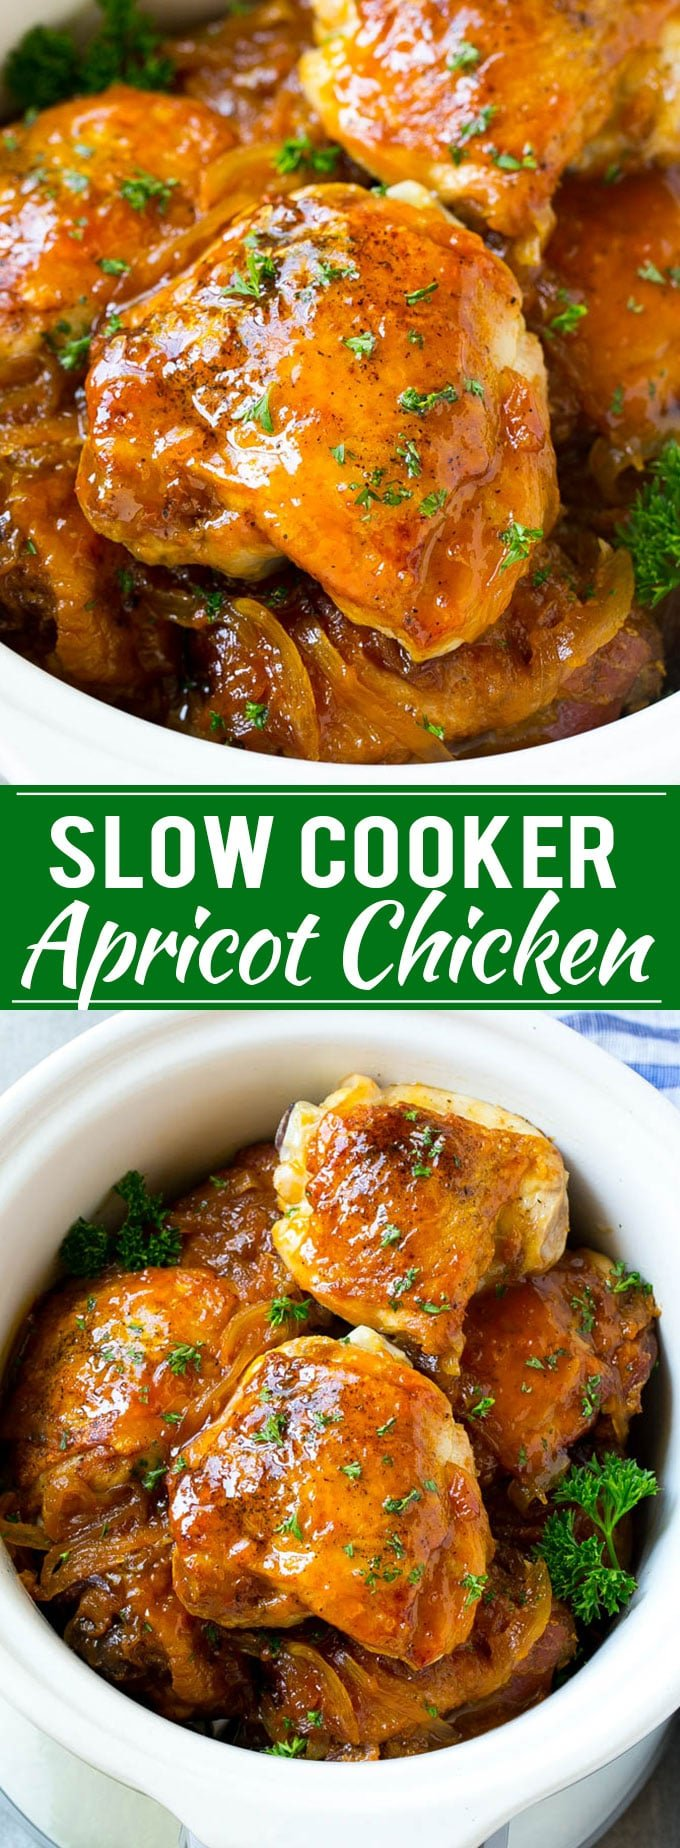 Slow Cooker Apricot Chicken Recipe | Apricot Chicken | Slow Cooker Chicken | Easy Chicken Recipe #chicken #dinner #apricot #apricotchicken #slowcooker #crockpot #dinneratthezoo